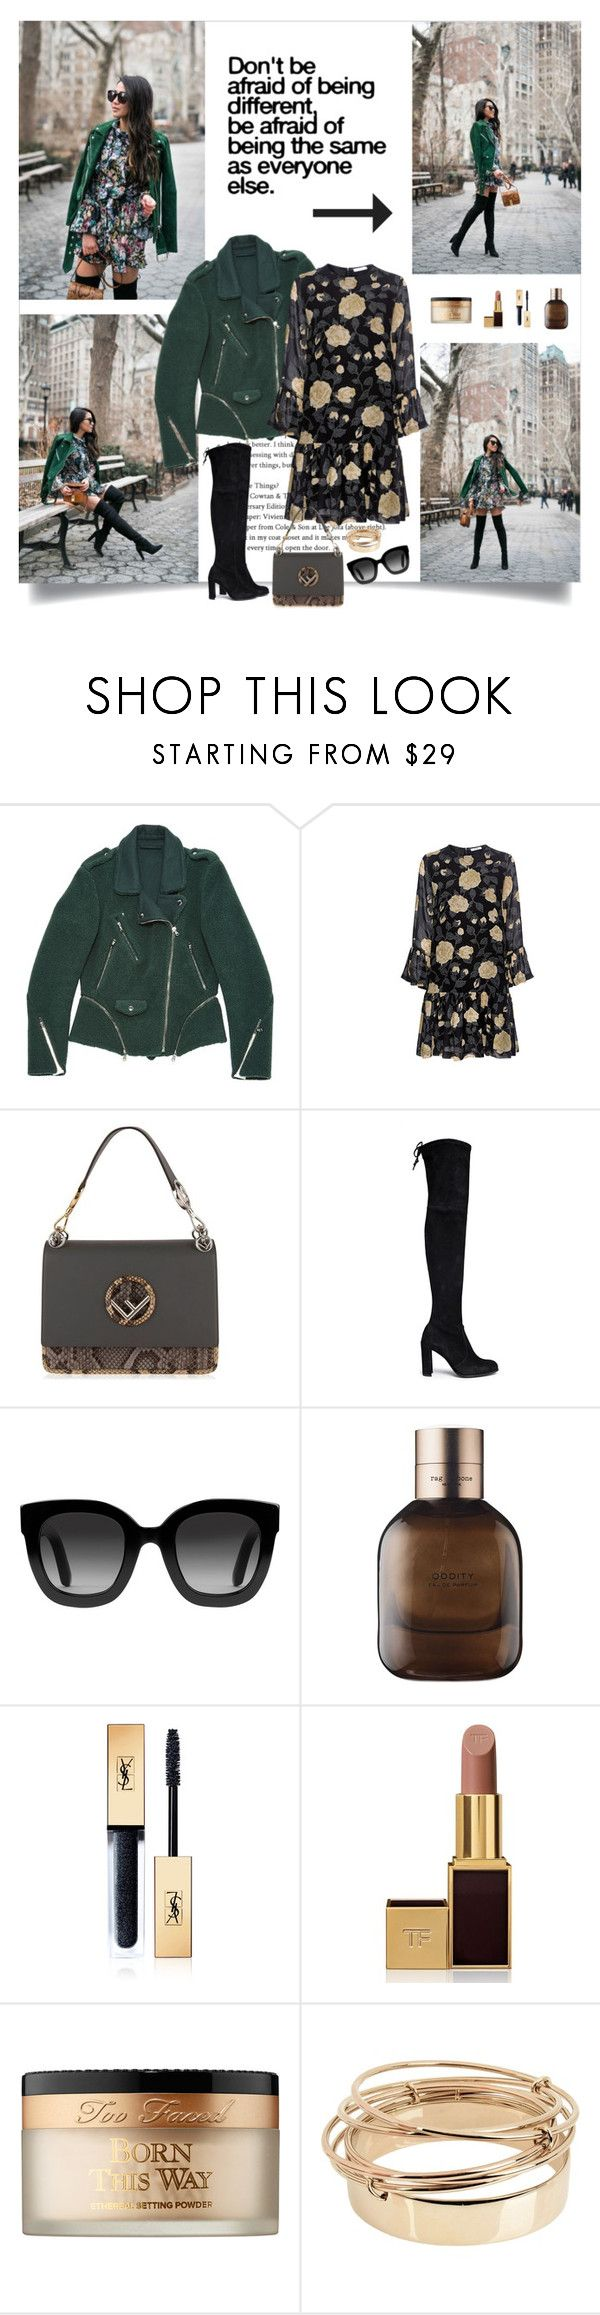 """Don't be afraid of being different"" by danniss ❤ liked on Polyvore featuring 3.1 Phillip Lim, Ganni, Fendi, Stuart Weitzman, Gucci, rag & bone, Yves Saint Laurent, Tom Ford, Too Faced Cosmetics and Valentino"